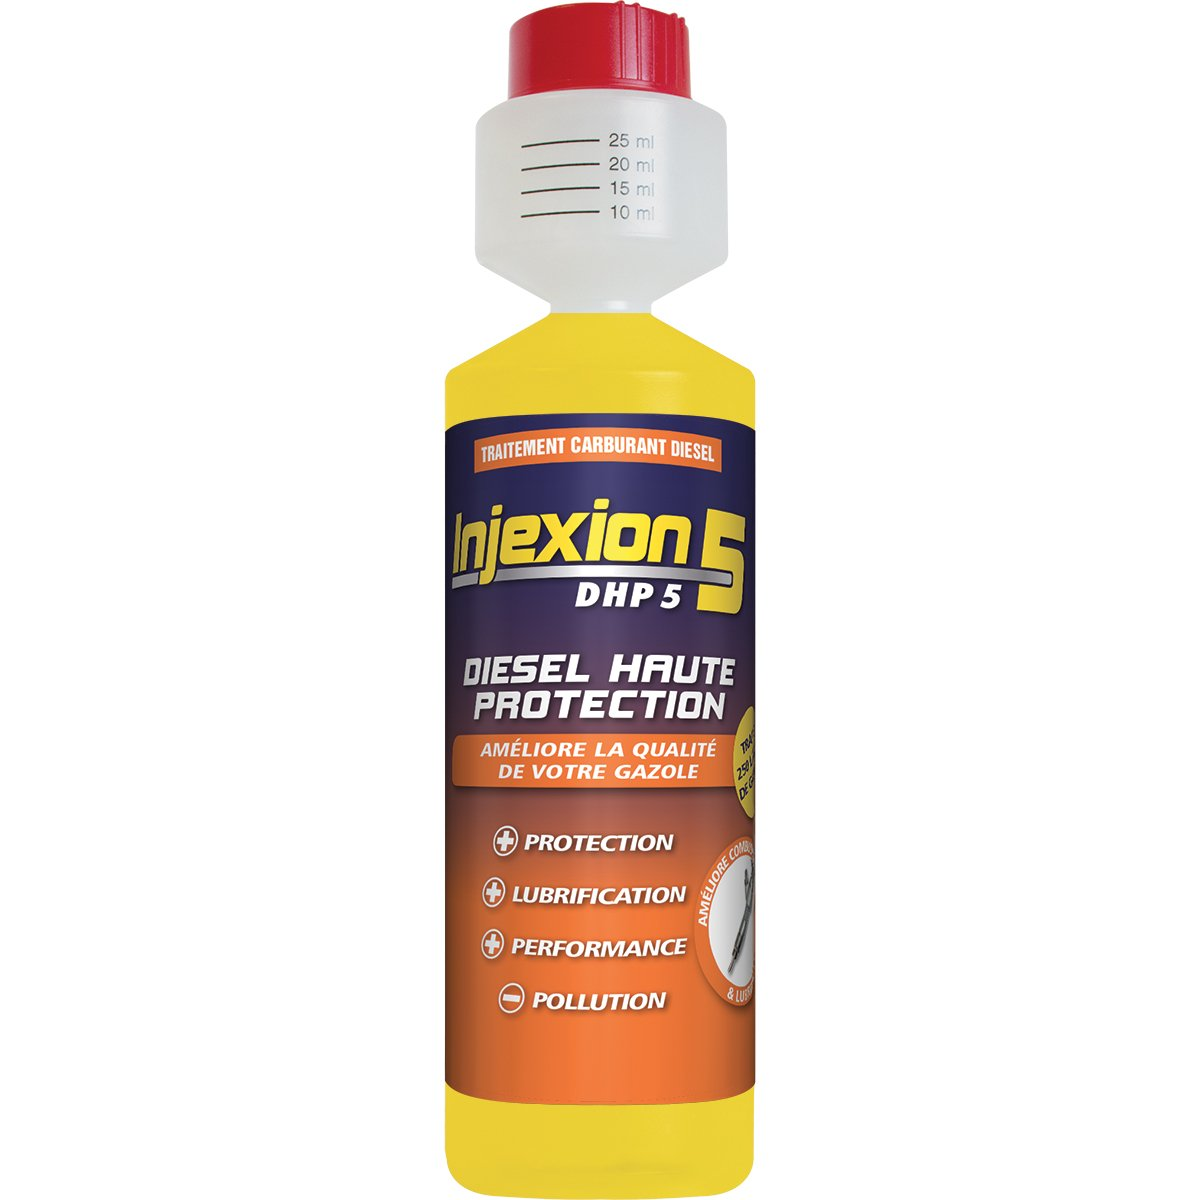 INJEXION 5 IDHP5 5 DHP5 Diesel Haute Protection Soditen